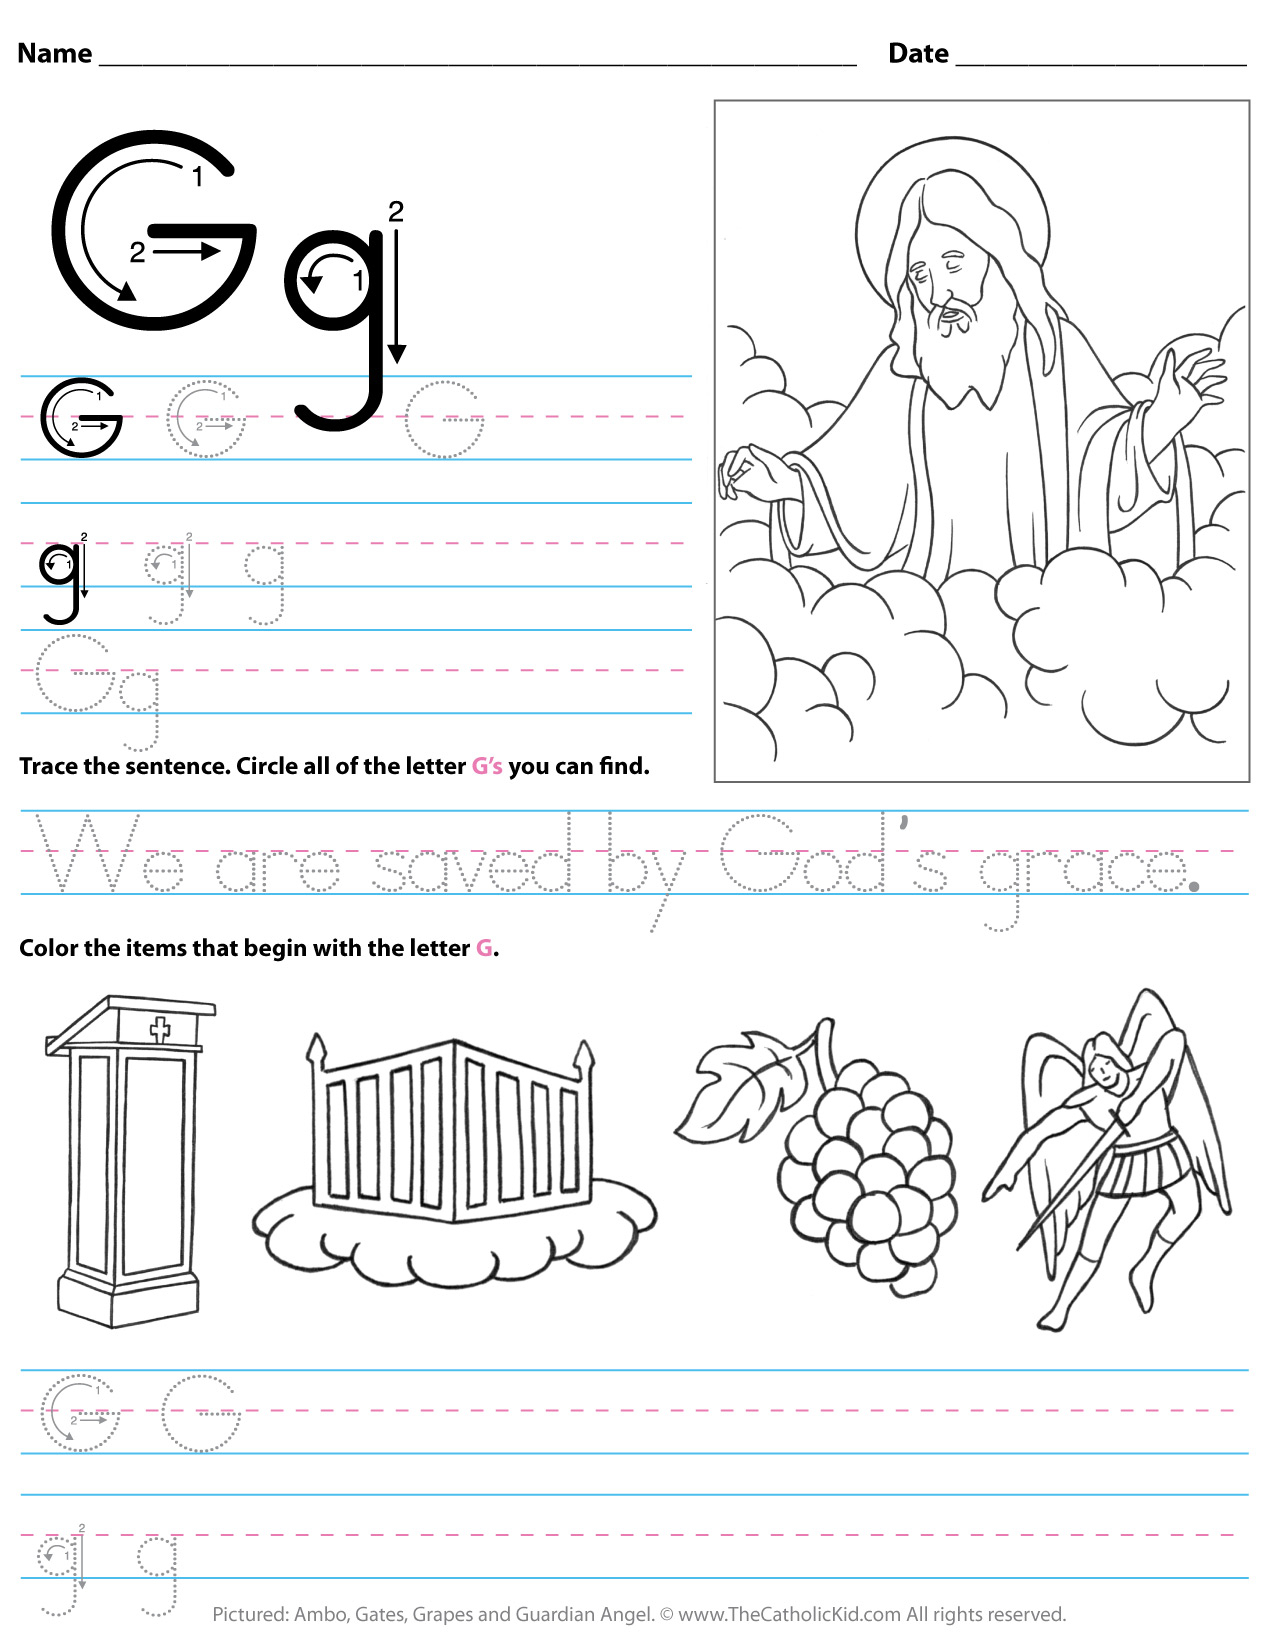 Catholic Alphabet Letter G Worksheet Preschool Kindergarten throughout Letter G Worksheets For Kinder